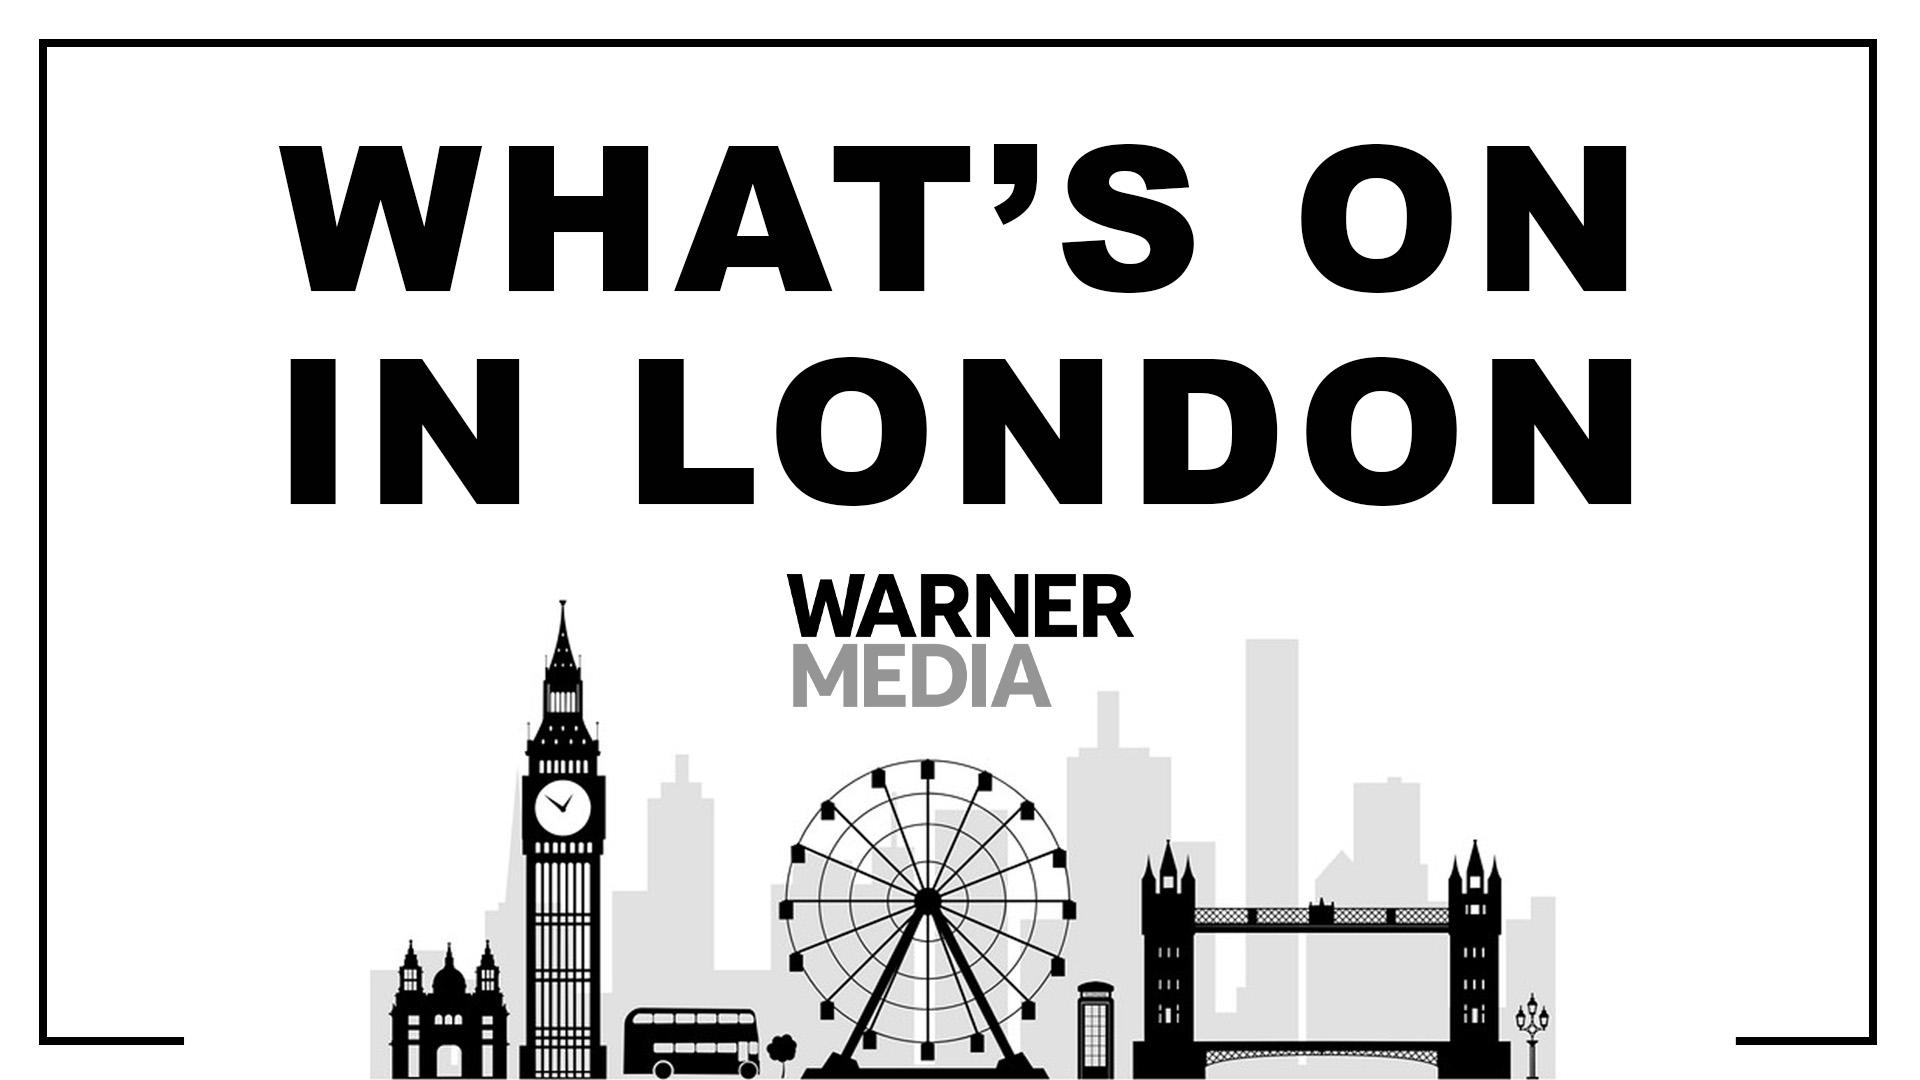 Whats on in London Channels thumbnail